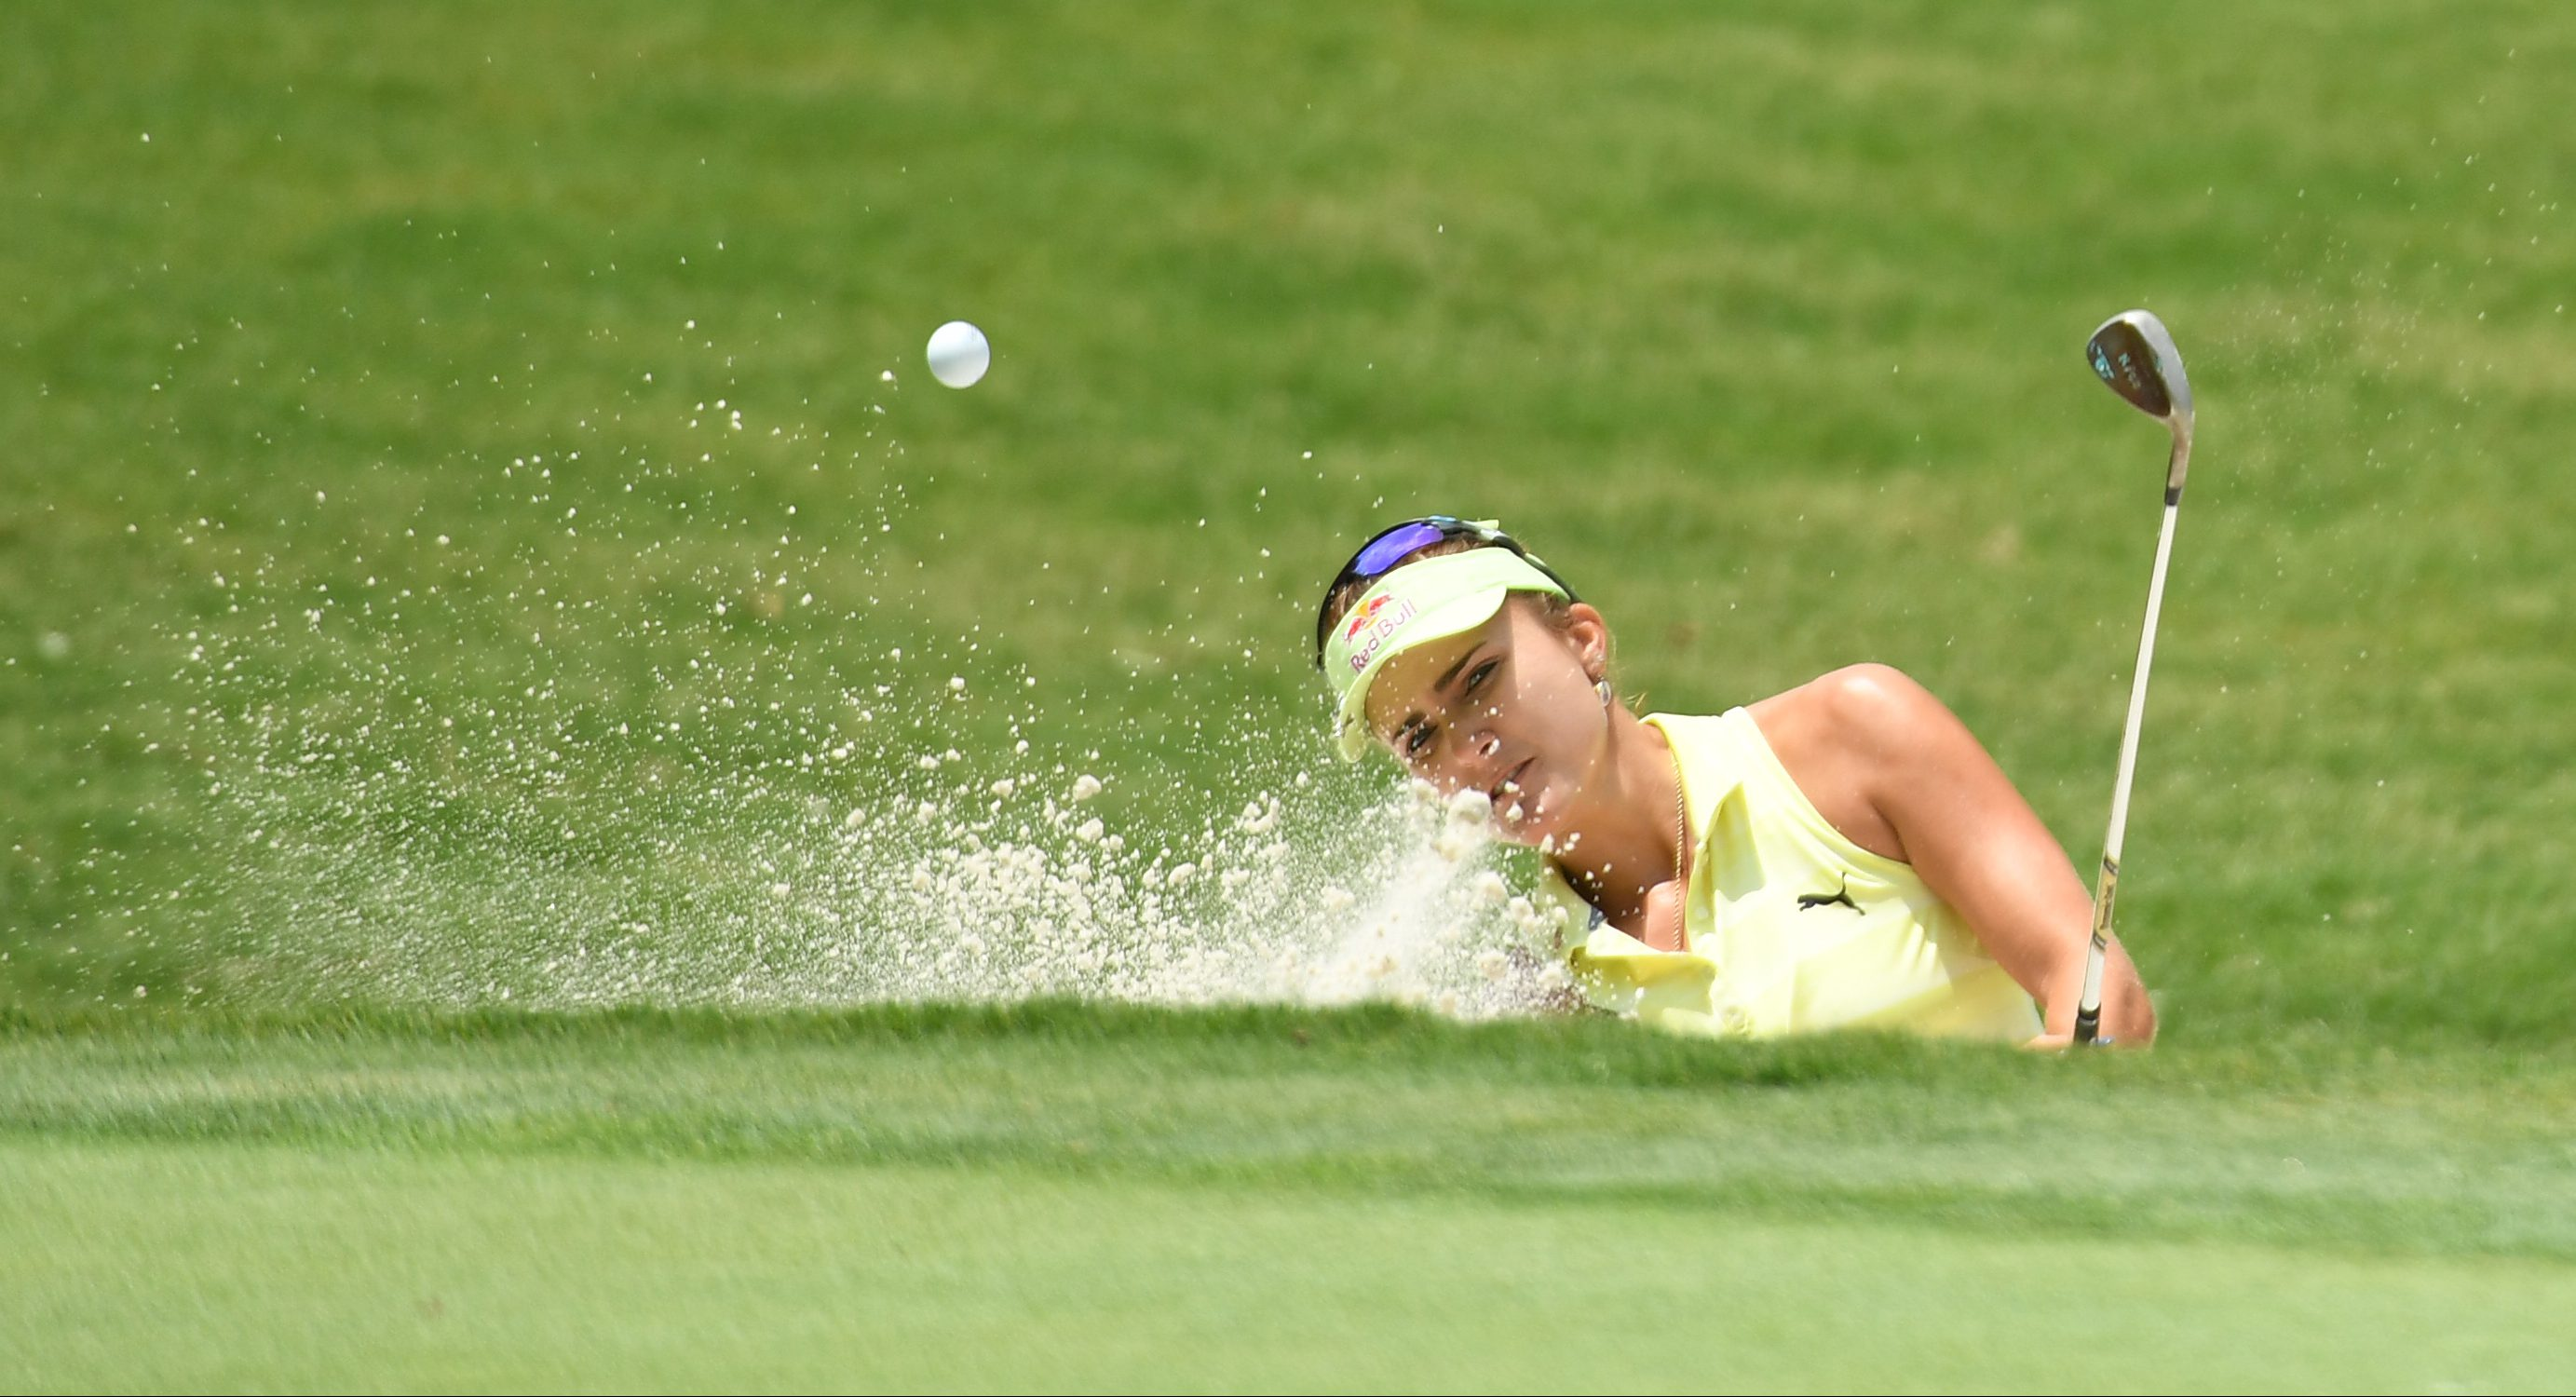 May 31, 2018; Shoal Creek, AL, USA; Lexi Thompson hits from the sand on to the seventh green during the first round of the U.S. Women's Open Championship golf tournament at Shoal Creek. Mandatory Credit: John David Mercer-USA TODAY Sports